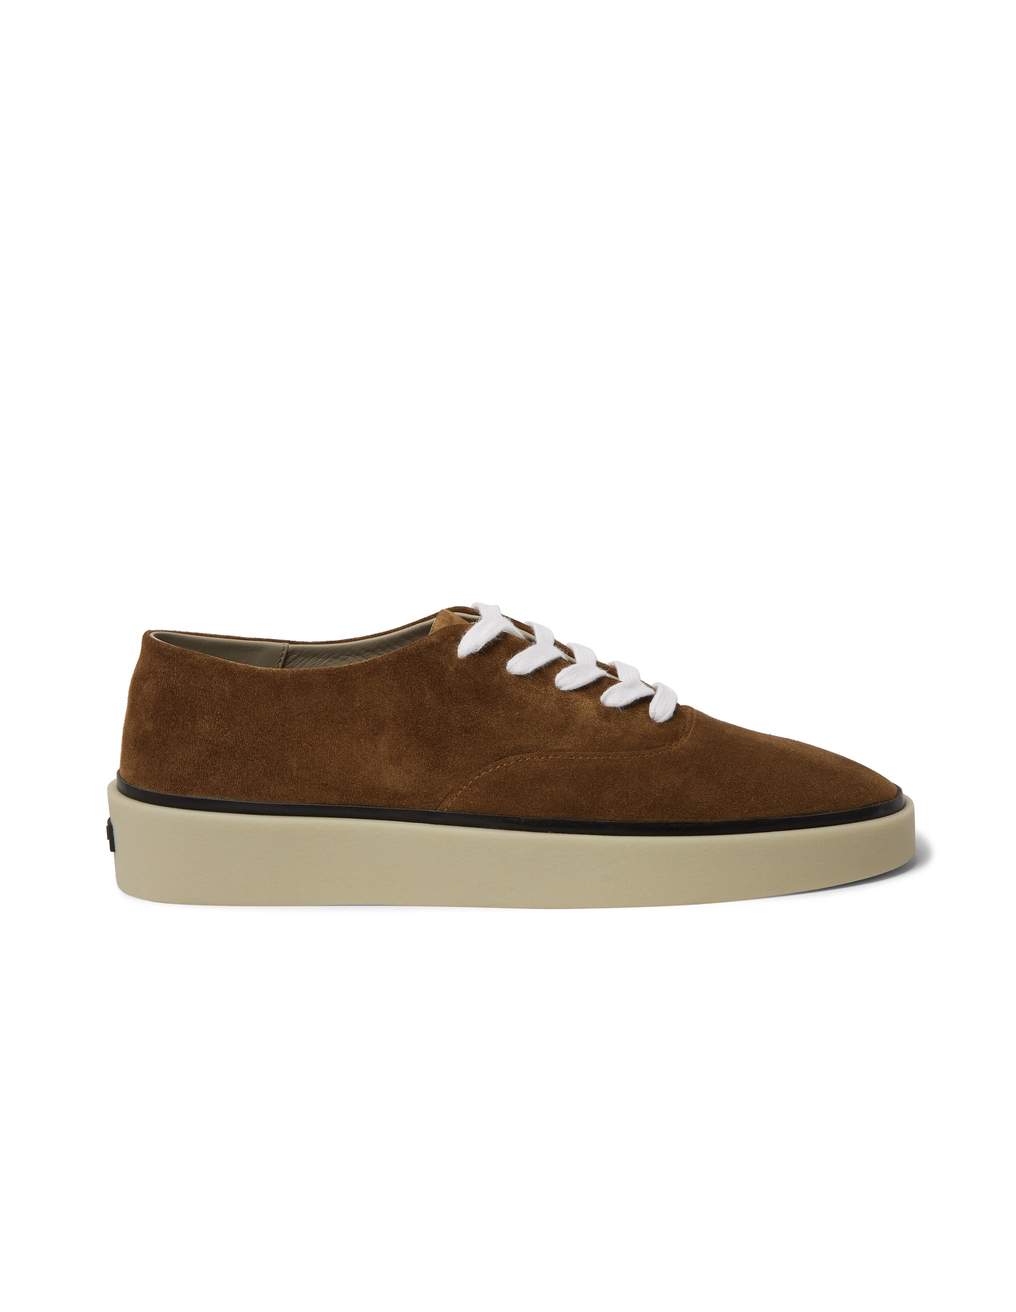 Fear of God x Zegna Brown Suede Sneakers